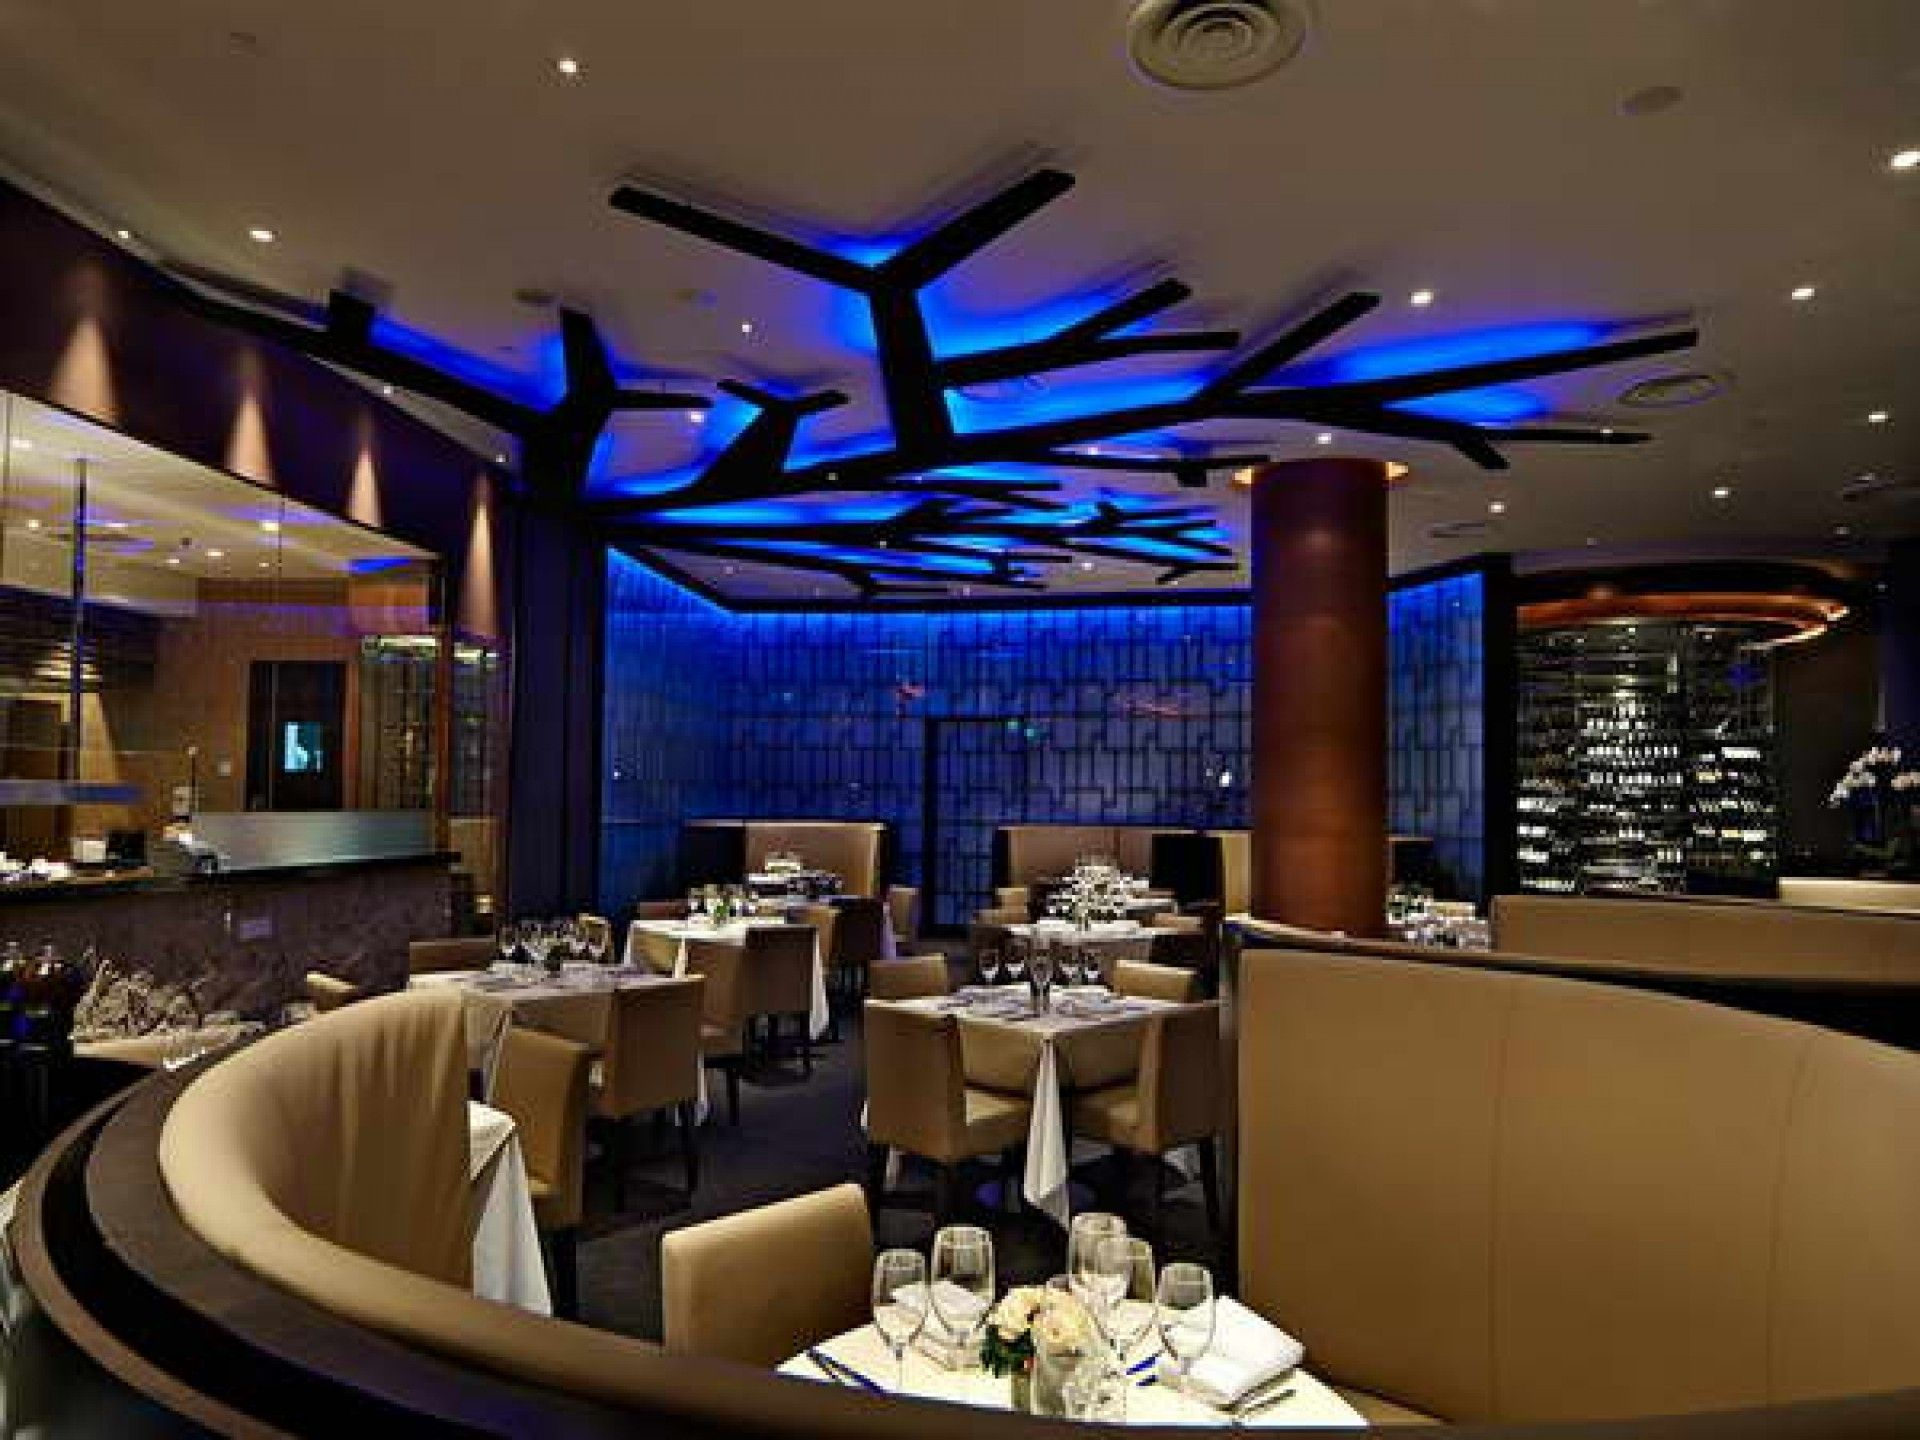 Trendy restaurant concept design ideas restaurant for Hotel concepts